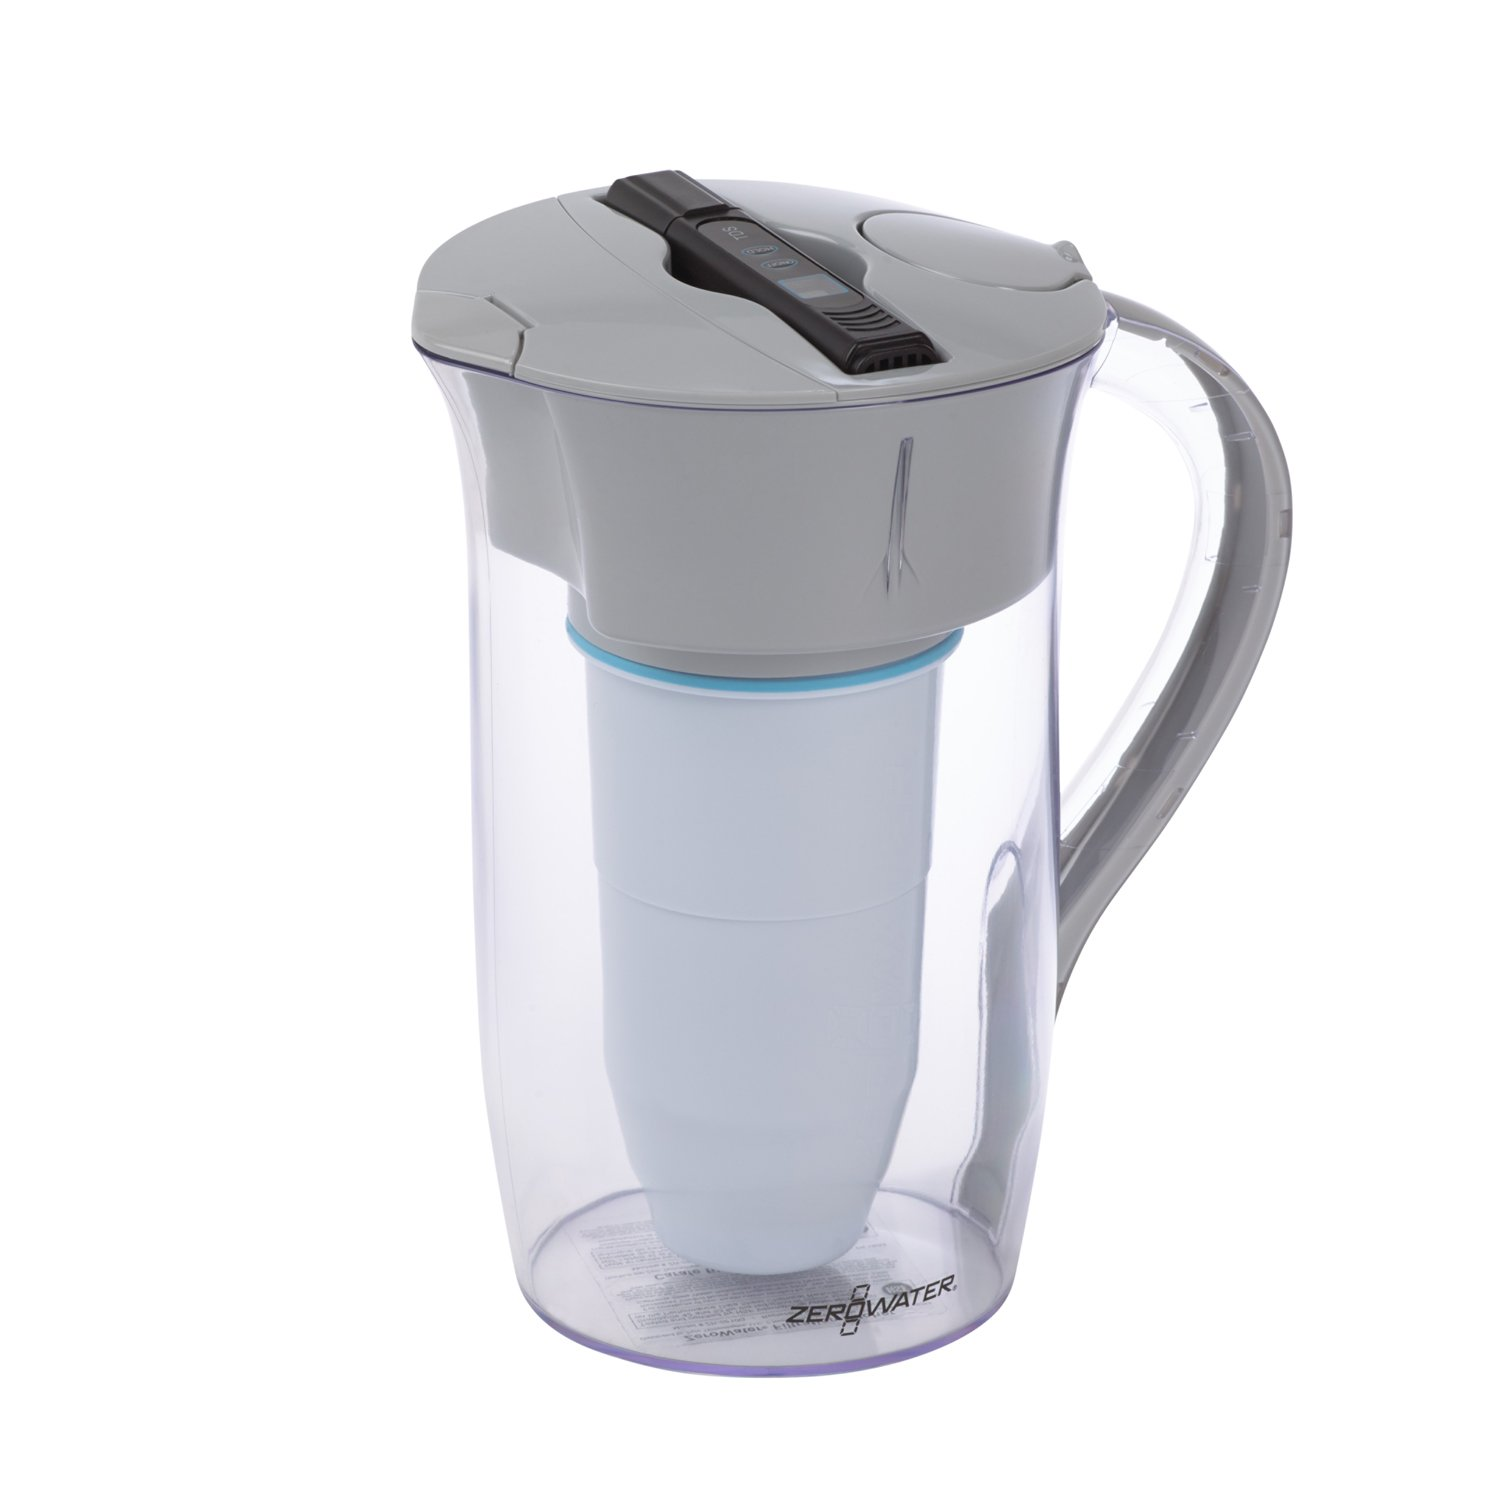 ZeroWater, 8 Cup Round Pitcher with Free Water Quality Meter, BPA-Free, NSF Certified to Reduce Lead and Other Heavy Metals